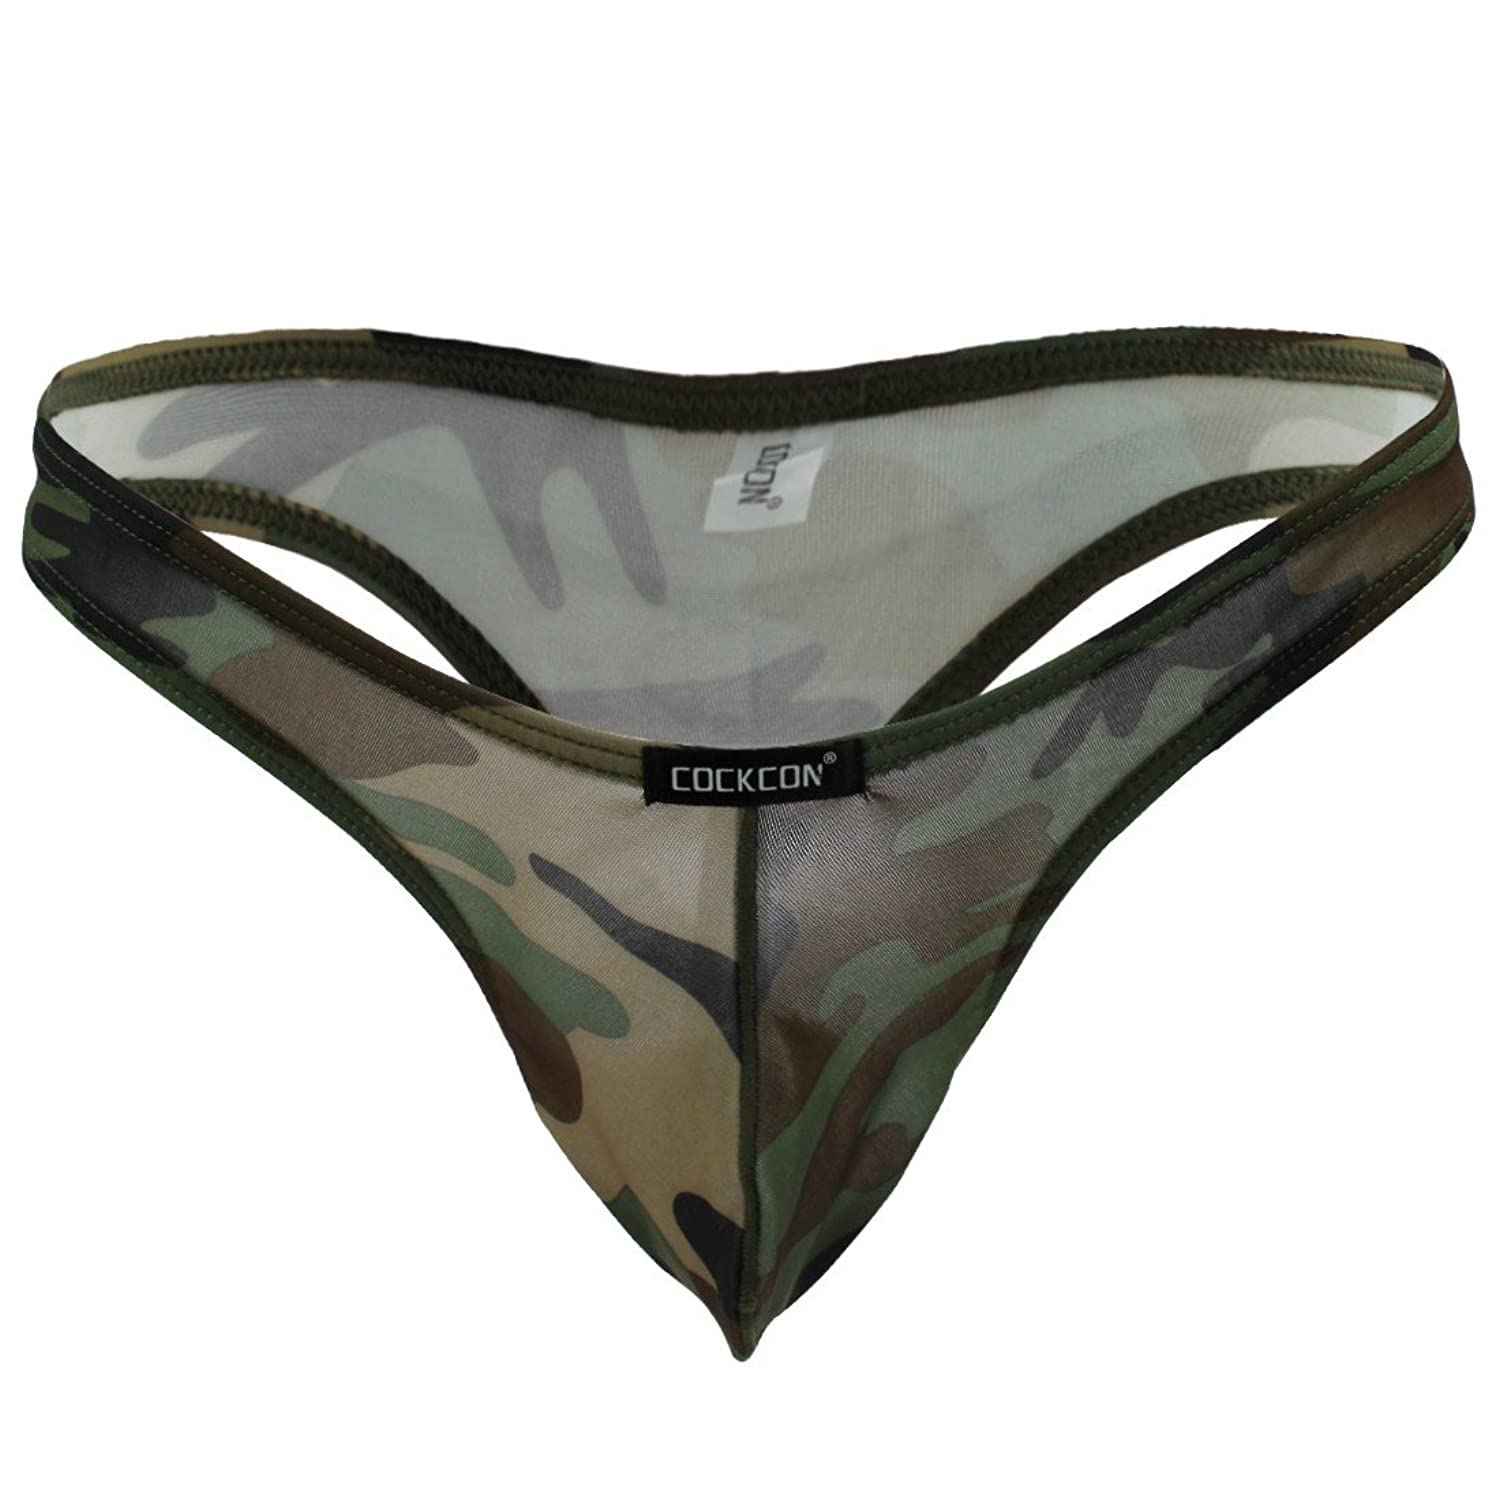 iEFiEL Mens Bulge Pouch Thong Camouflage Bottoms Underwear G-String at Amazon Mens Clothing store: